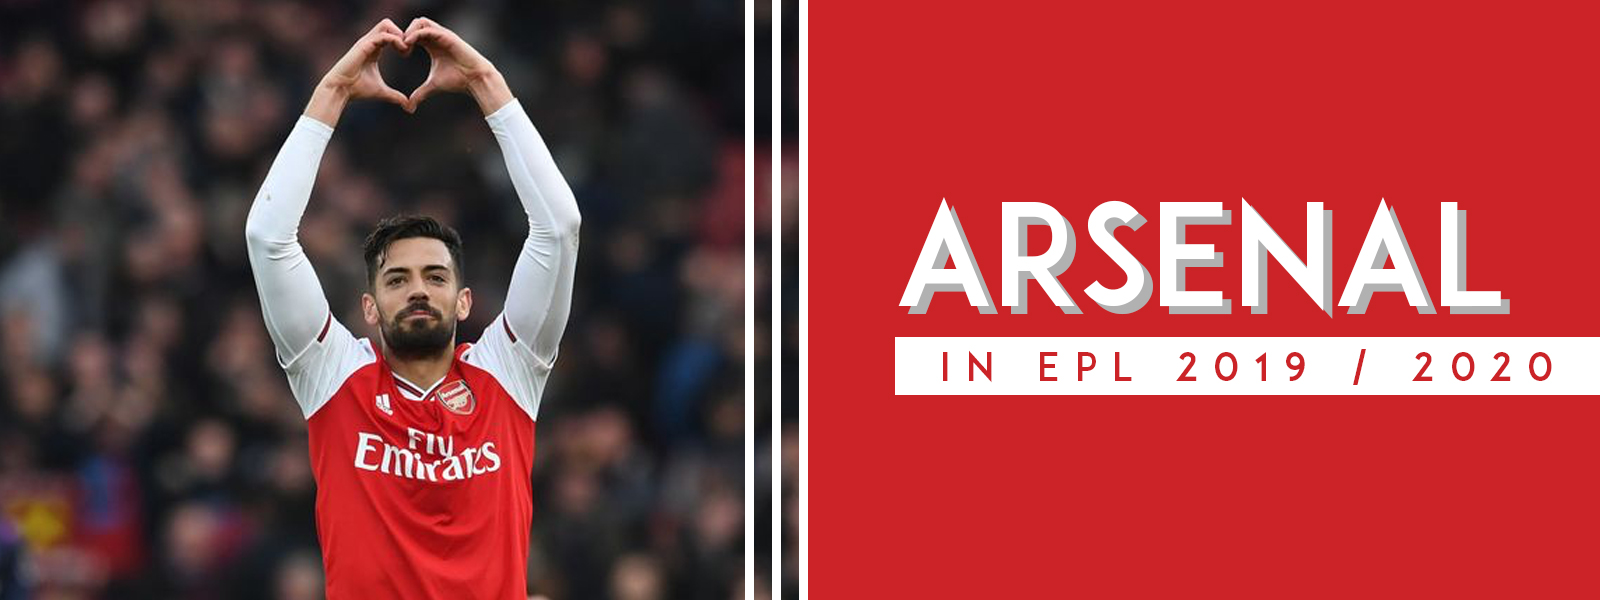 Arsenal Performance In English Premier League 2019 / 2020